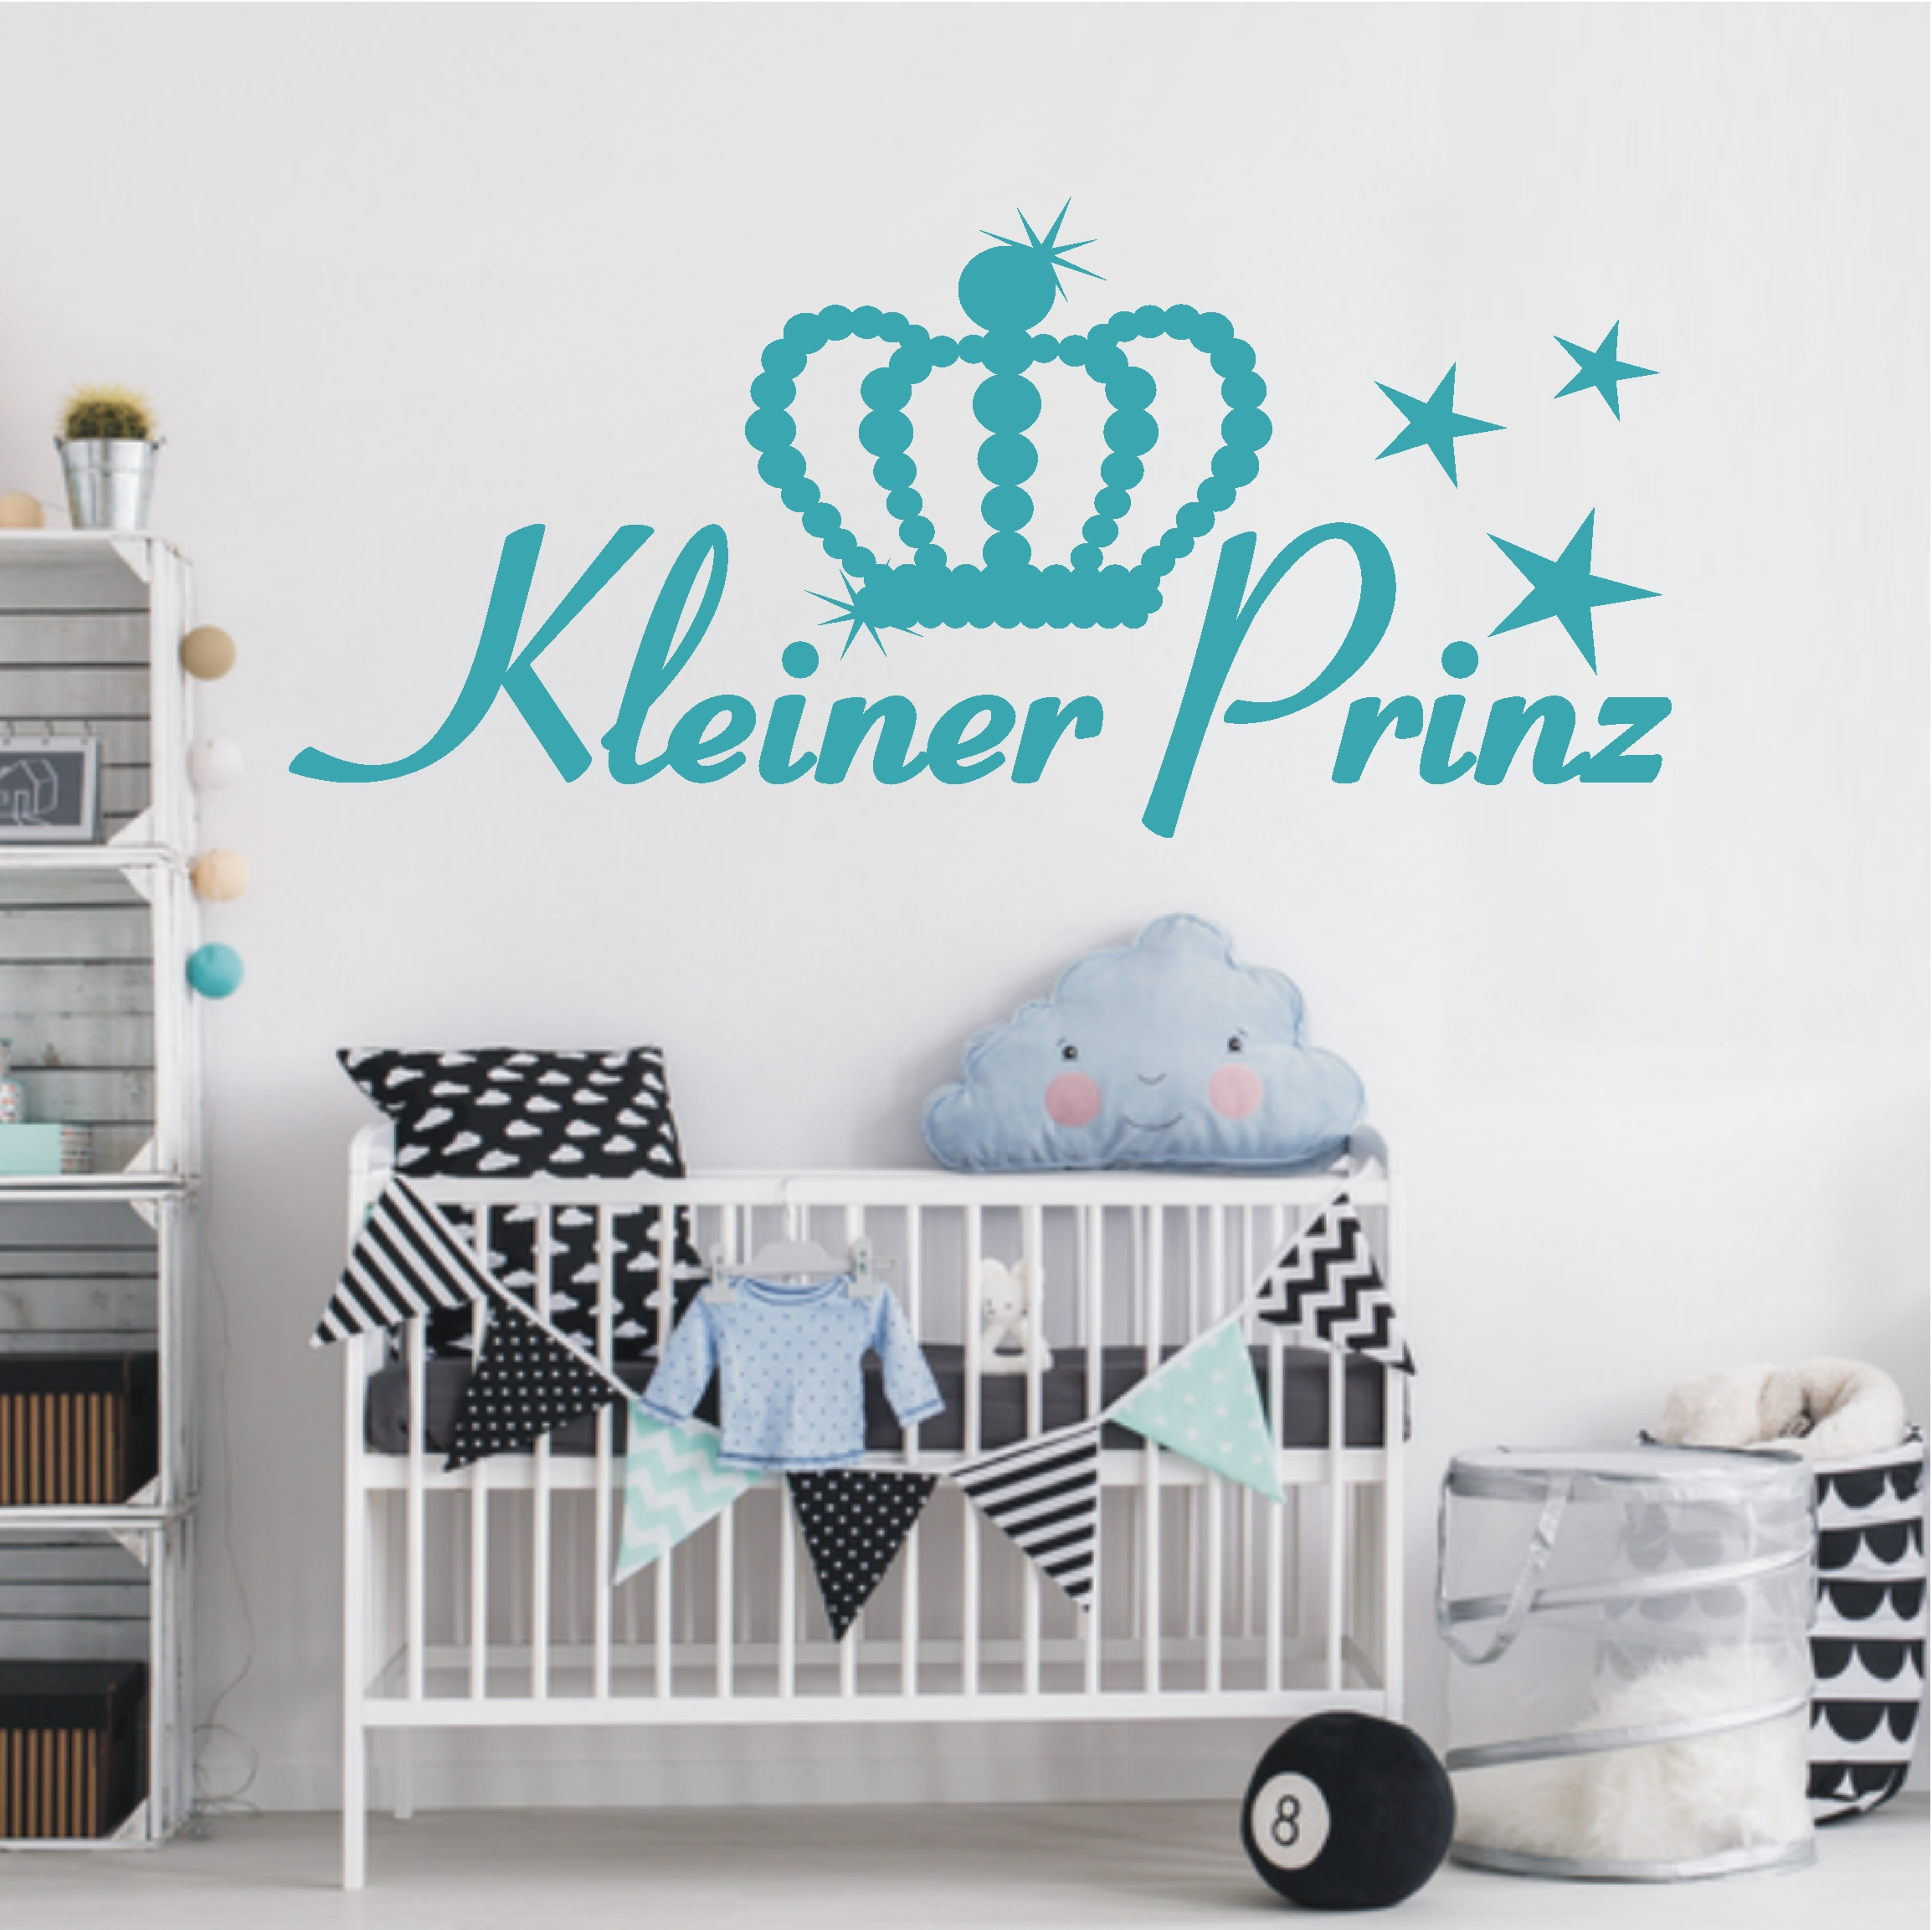 deko shop wandtattoo kleiner prinz schriftzug deko. Black Bedroom Furniture Sets. Home Design Ideas